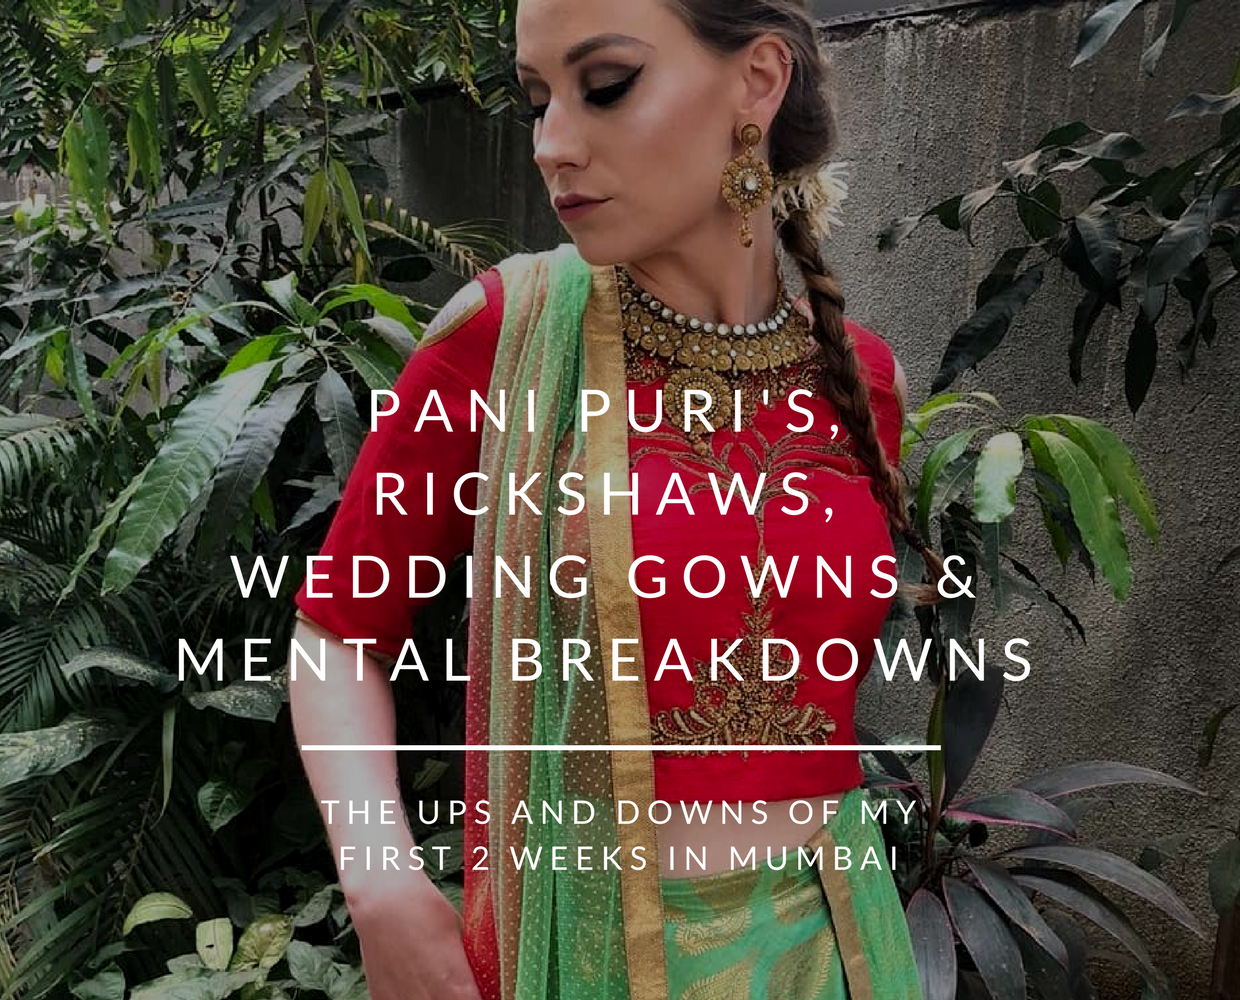 Pani Puri's, Rickshaws, Wedding Gowns & Mental Breakdowns: The ups and downs of my first 2 weeks in Mumbai